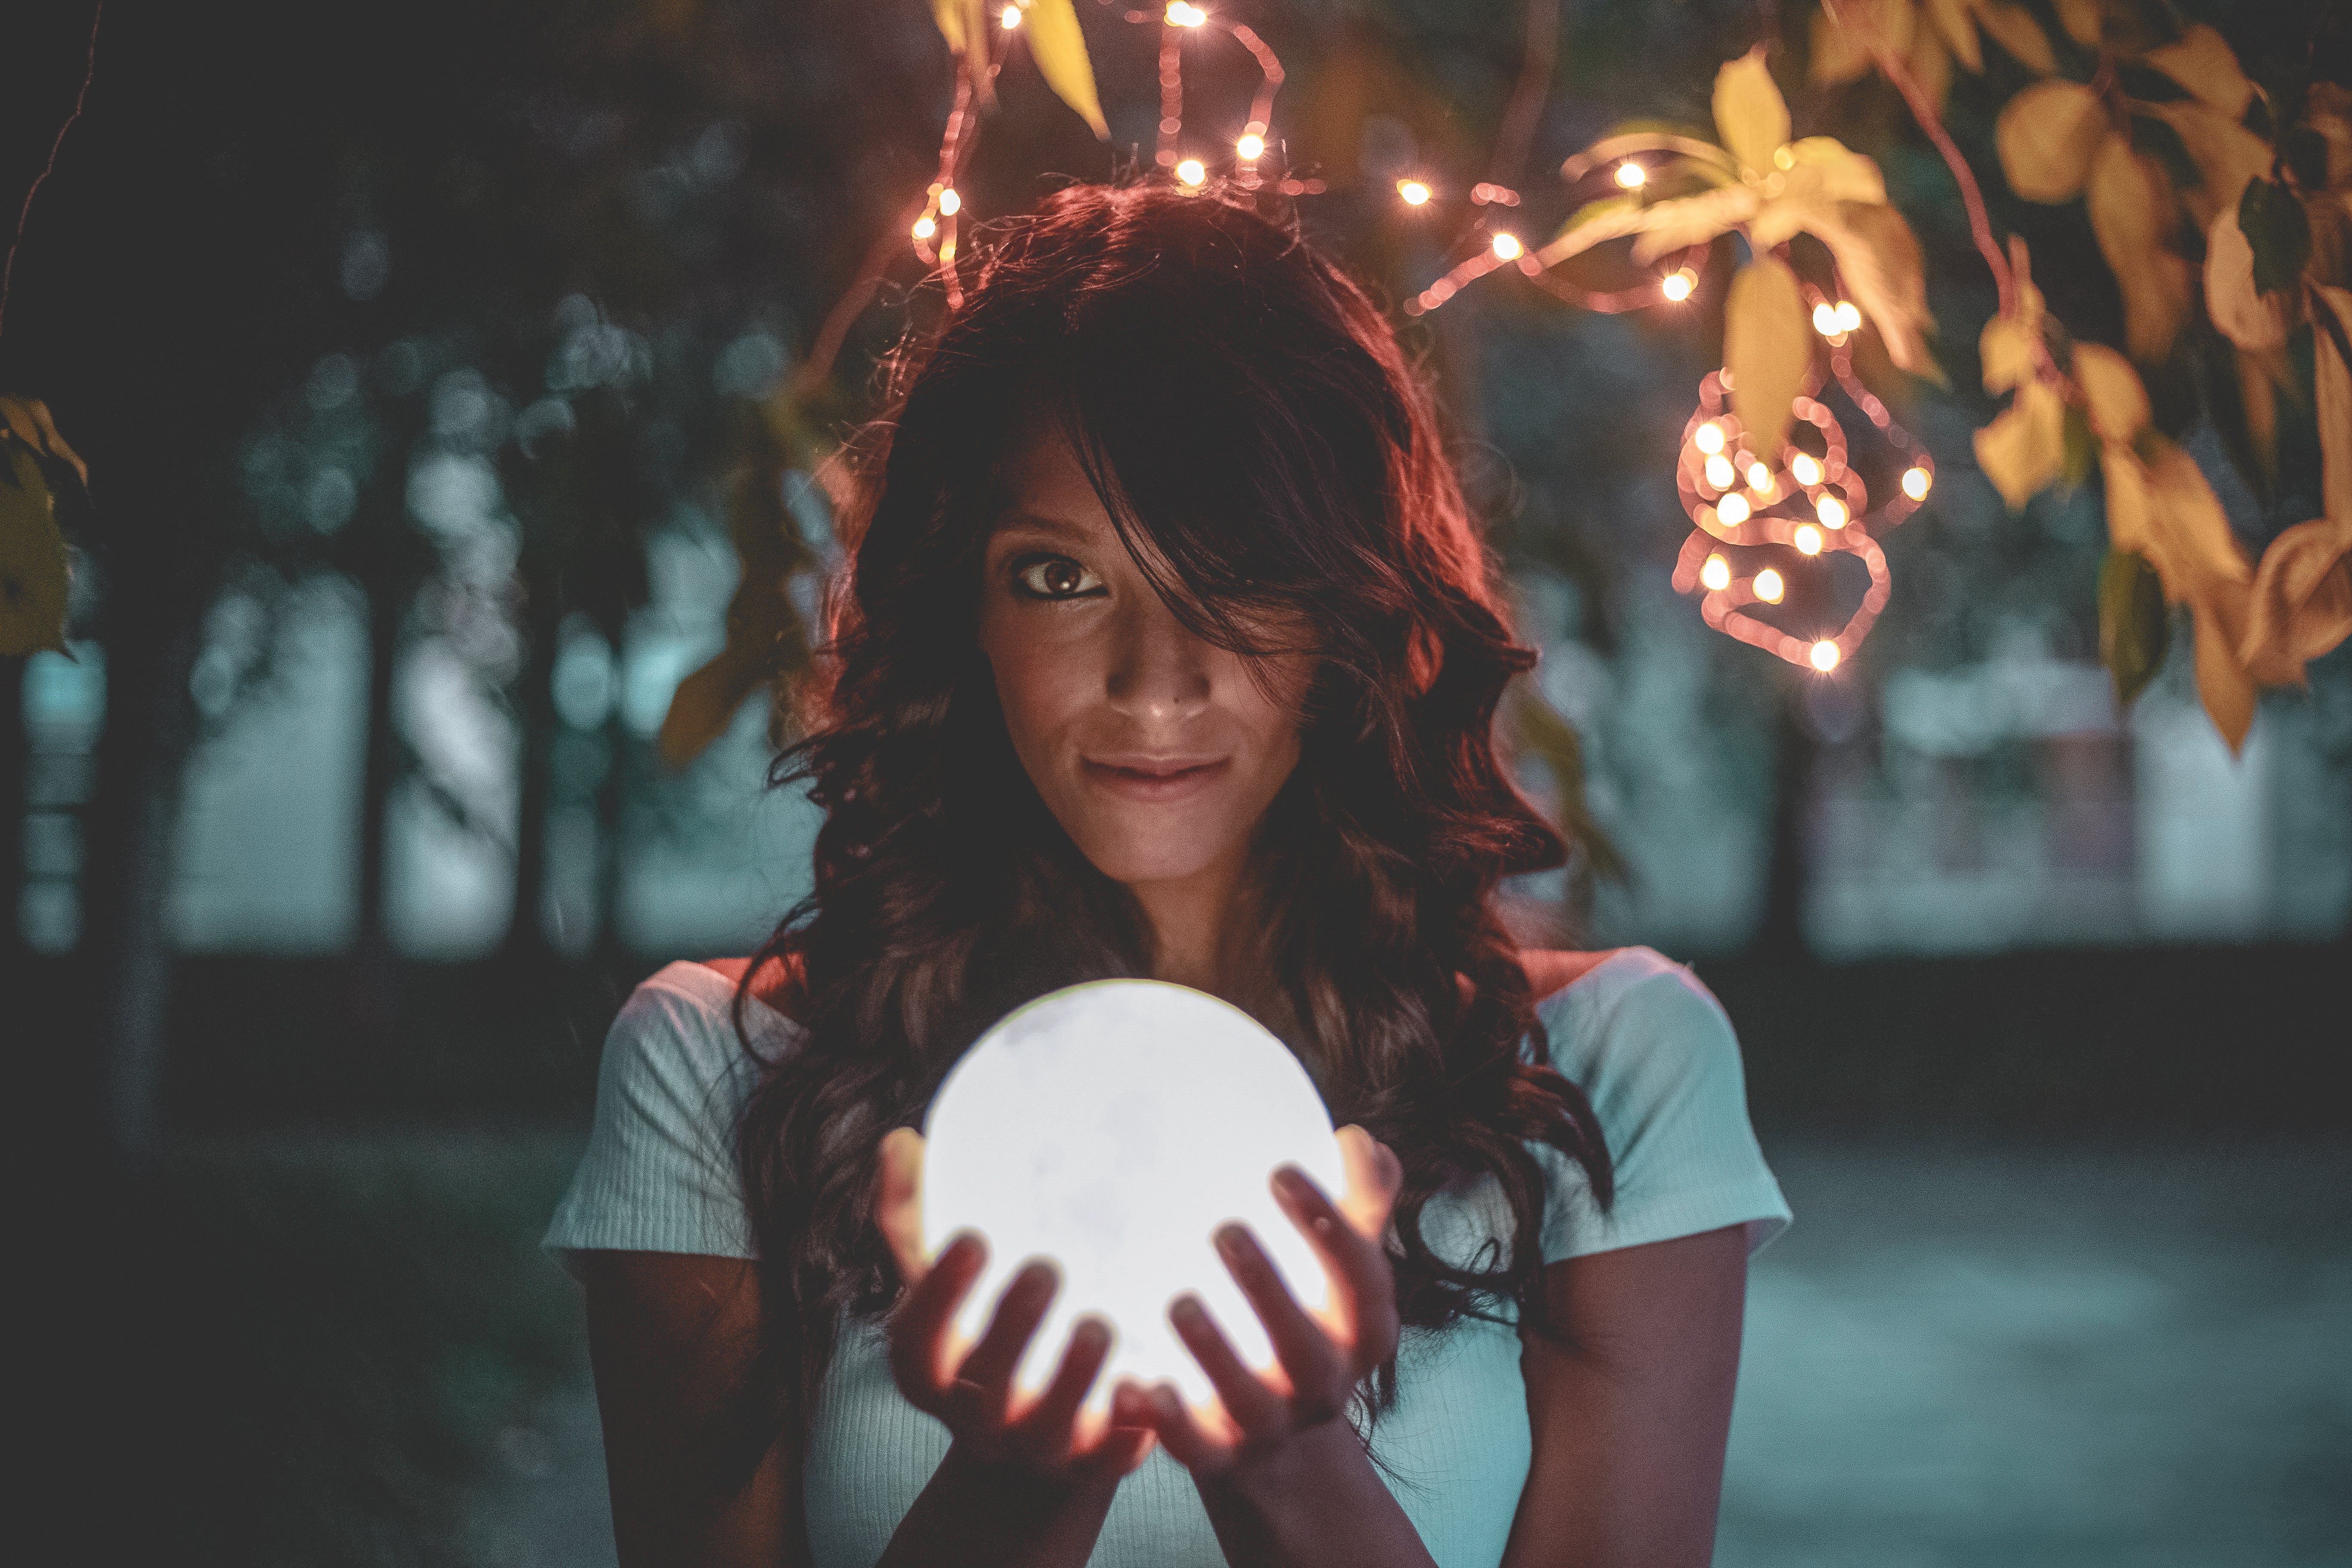 Woman Holding Lighted Glass Ball Under String Lights